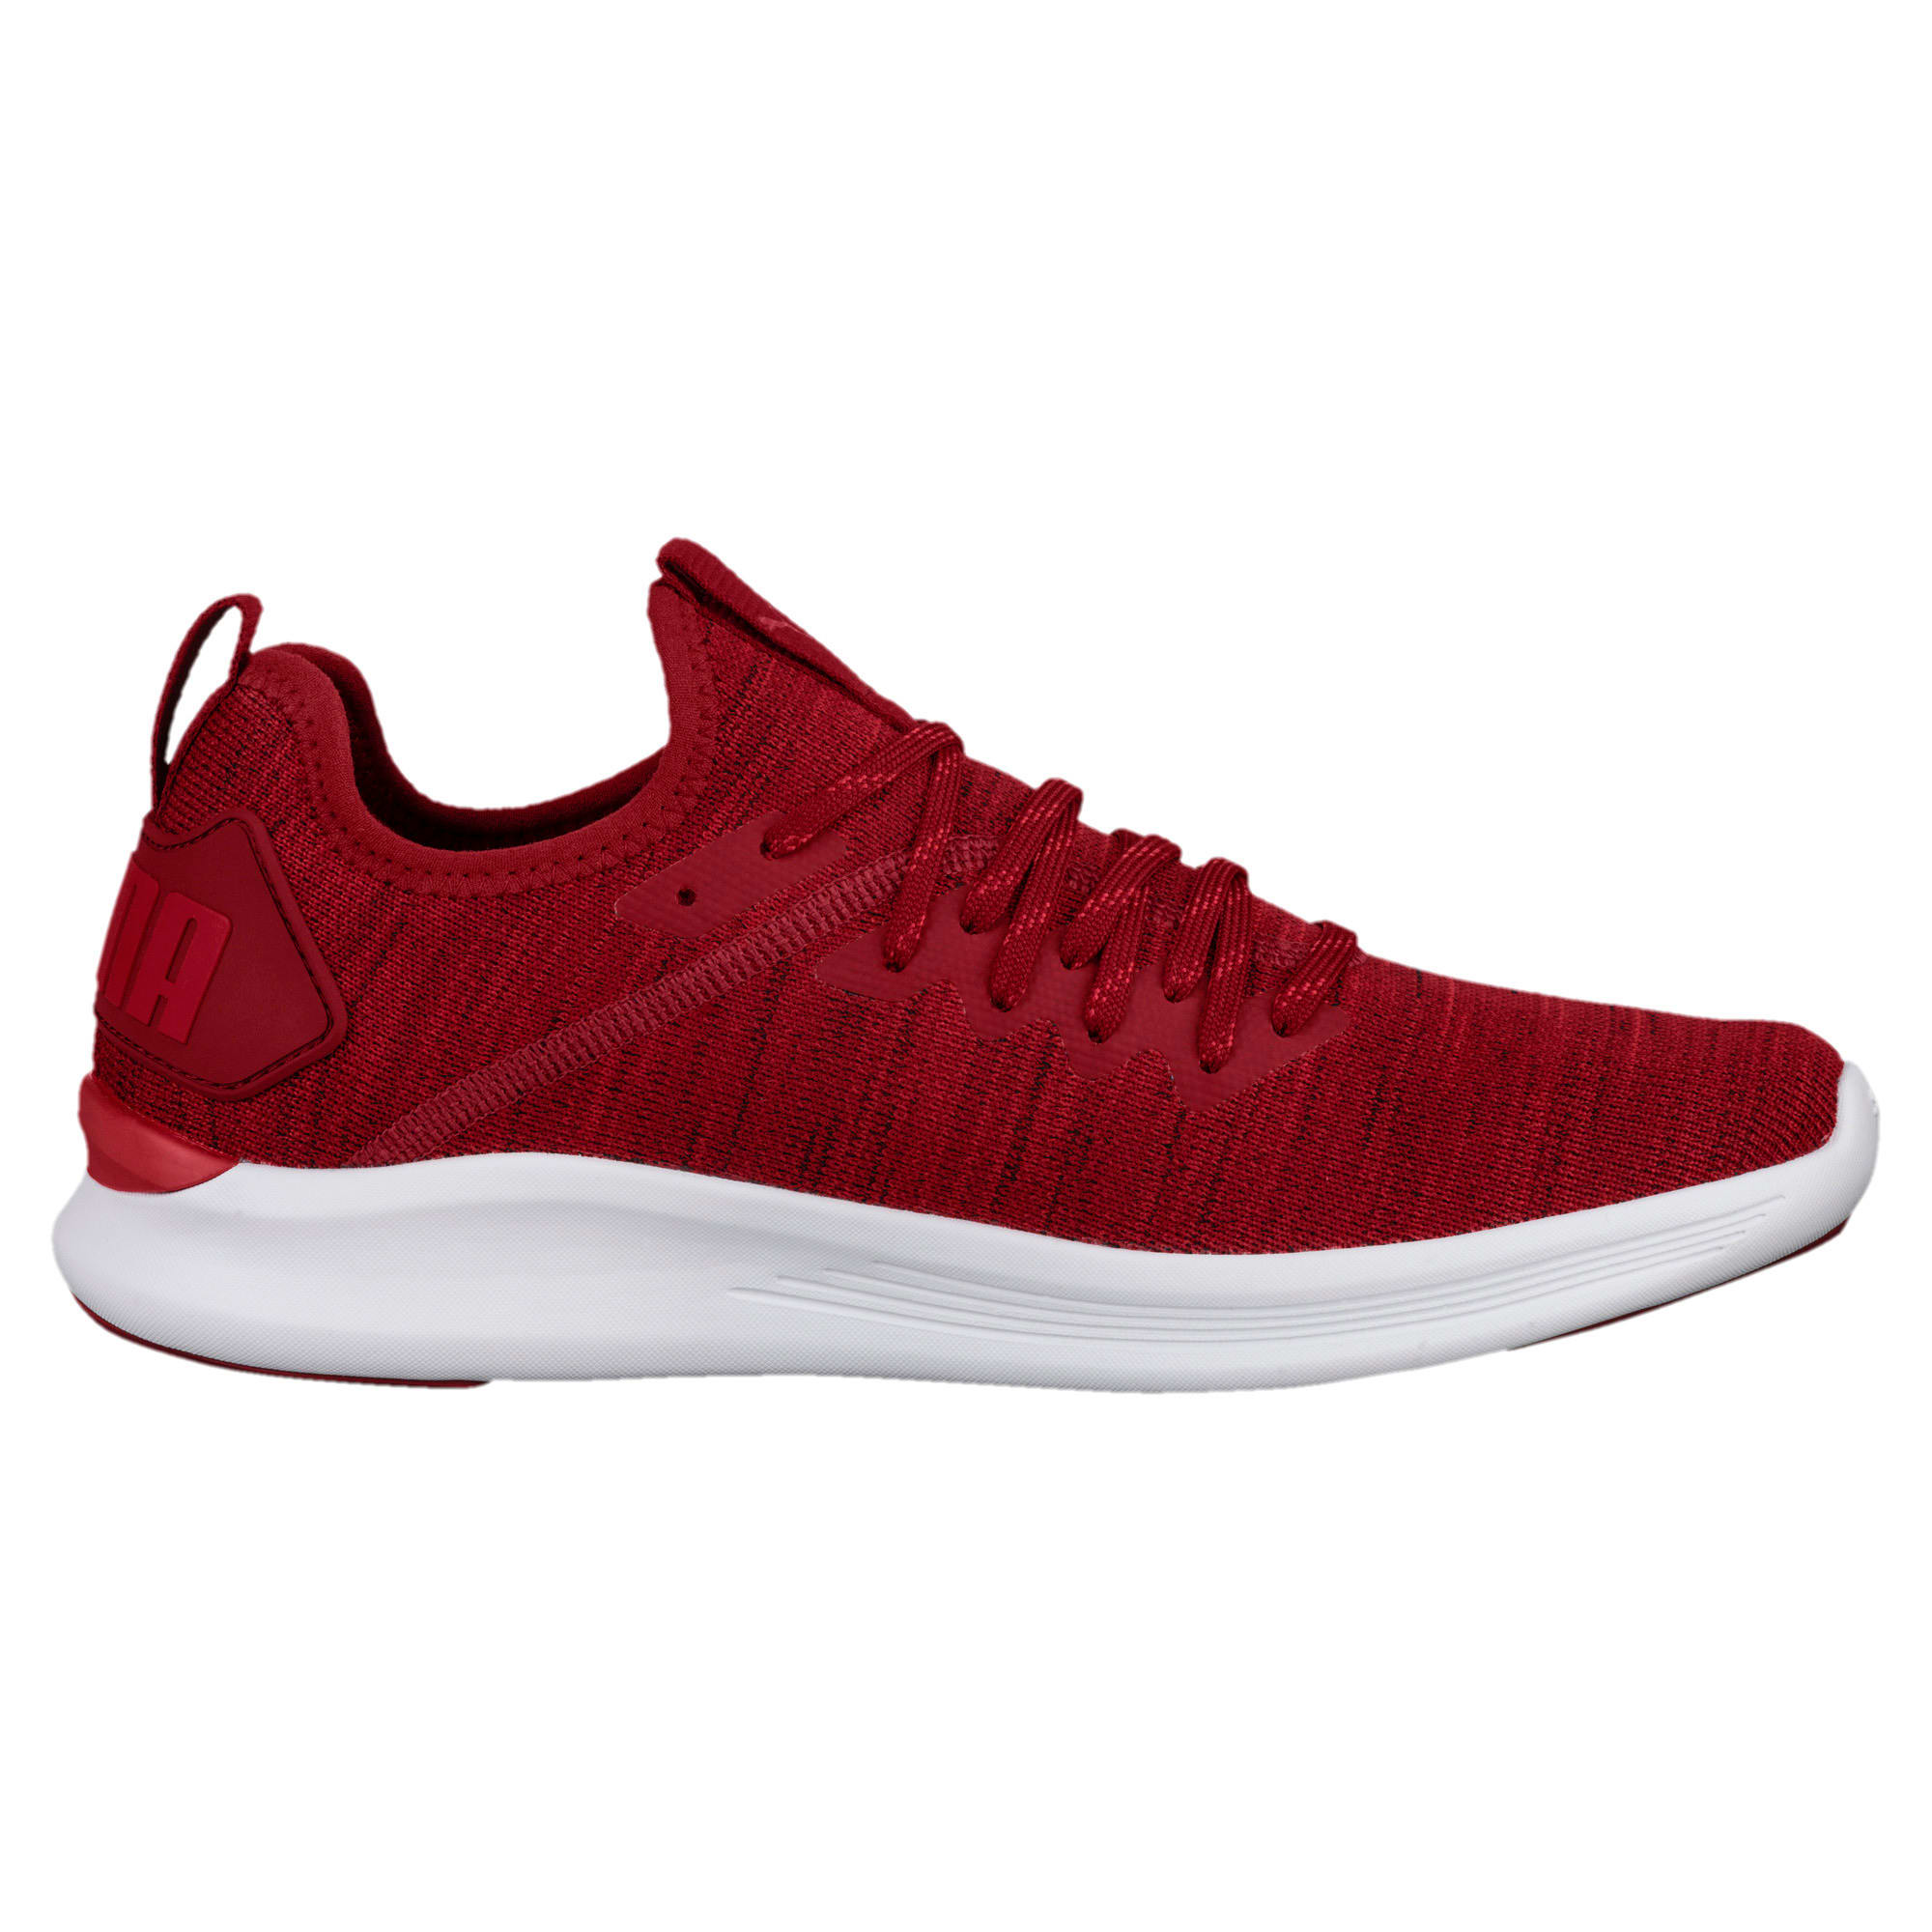 Thumbnail 4 of IGNITE Flash evoKNIT Men's Training Shoes, Red Dahlia-Red-White, medium-IND